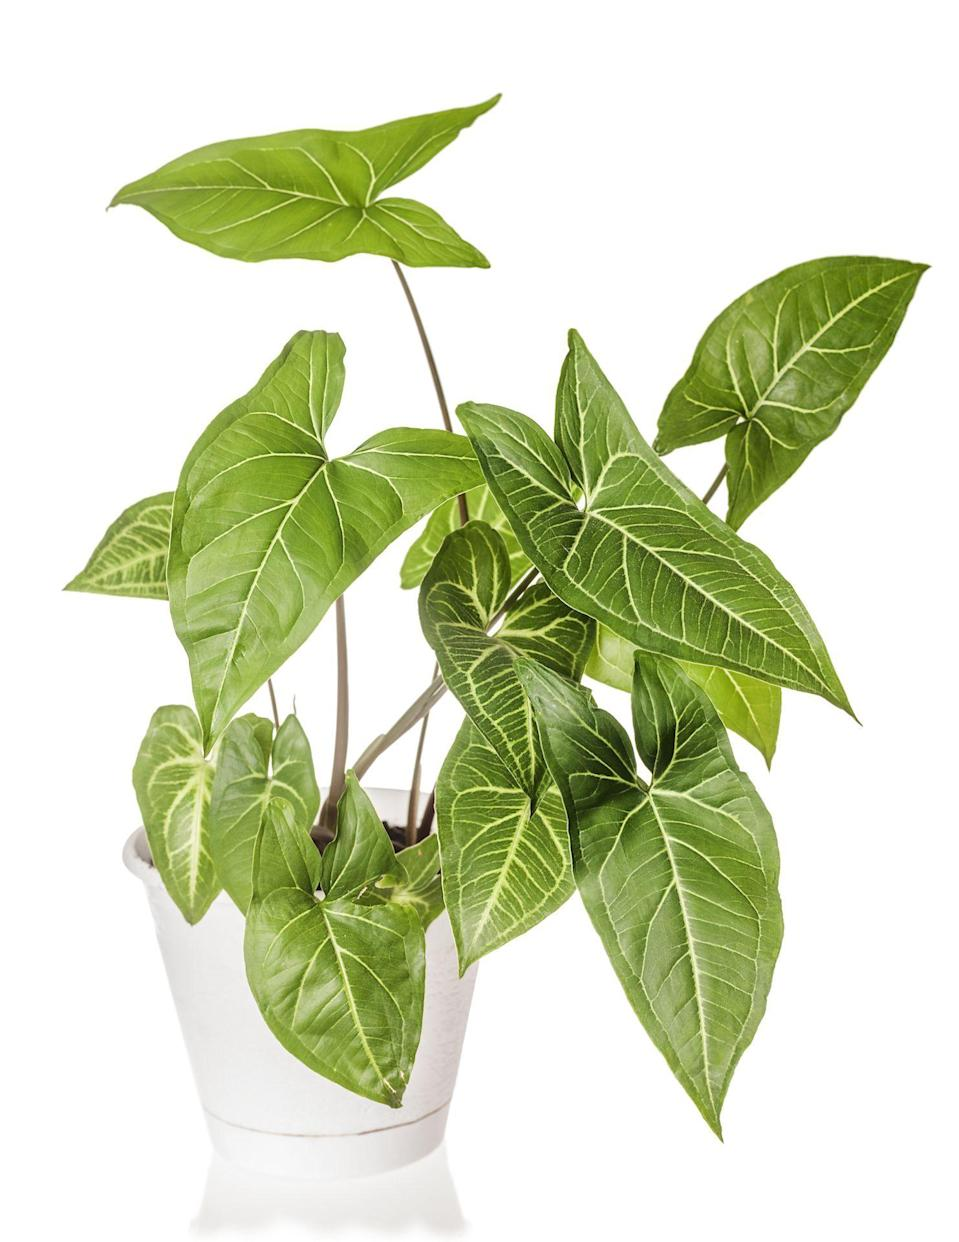 """<p><strong>Shirl's Plant Therapy</strong></p><p>etsy.com</p><p><strong>$15.00</strong></p><p><a href=""""https://go.redirectingat.com?id=74968X1596630&url=https%3A%2F%2Fwww.etsy.com%2Flisting%2F731483685%2Frare-syngonium-podophyllum-varigated&sref=https%3A%2F%2Fwww.elledecor.com%2Flife-culture%2Ffun-at-home%2Fnews%2Fg3284%2Fbest-indoor-plants-for-apartments%2F"""" rel=""""nofollow noopener"""" target=""""_blank"""" data-ylk=""""slk:Shop Now"""" class=""""link rapid-noclick-resp"""">Shop Now</a></p><p>""""Just like other variegated plants, the beauty exists in its tricolor foliage,"""" says Carter. """"It will need its soil to stay evenly moist, so you'll have to water it more frequently during spring and summer. Don't ever let the soil completely dry out. It thrives in humidity, so a weekly misting session would be beneficial. Like most houseplants, it likes bright indirect light but can also tolerate low light.""""</p>"""